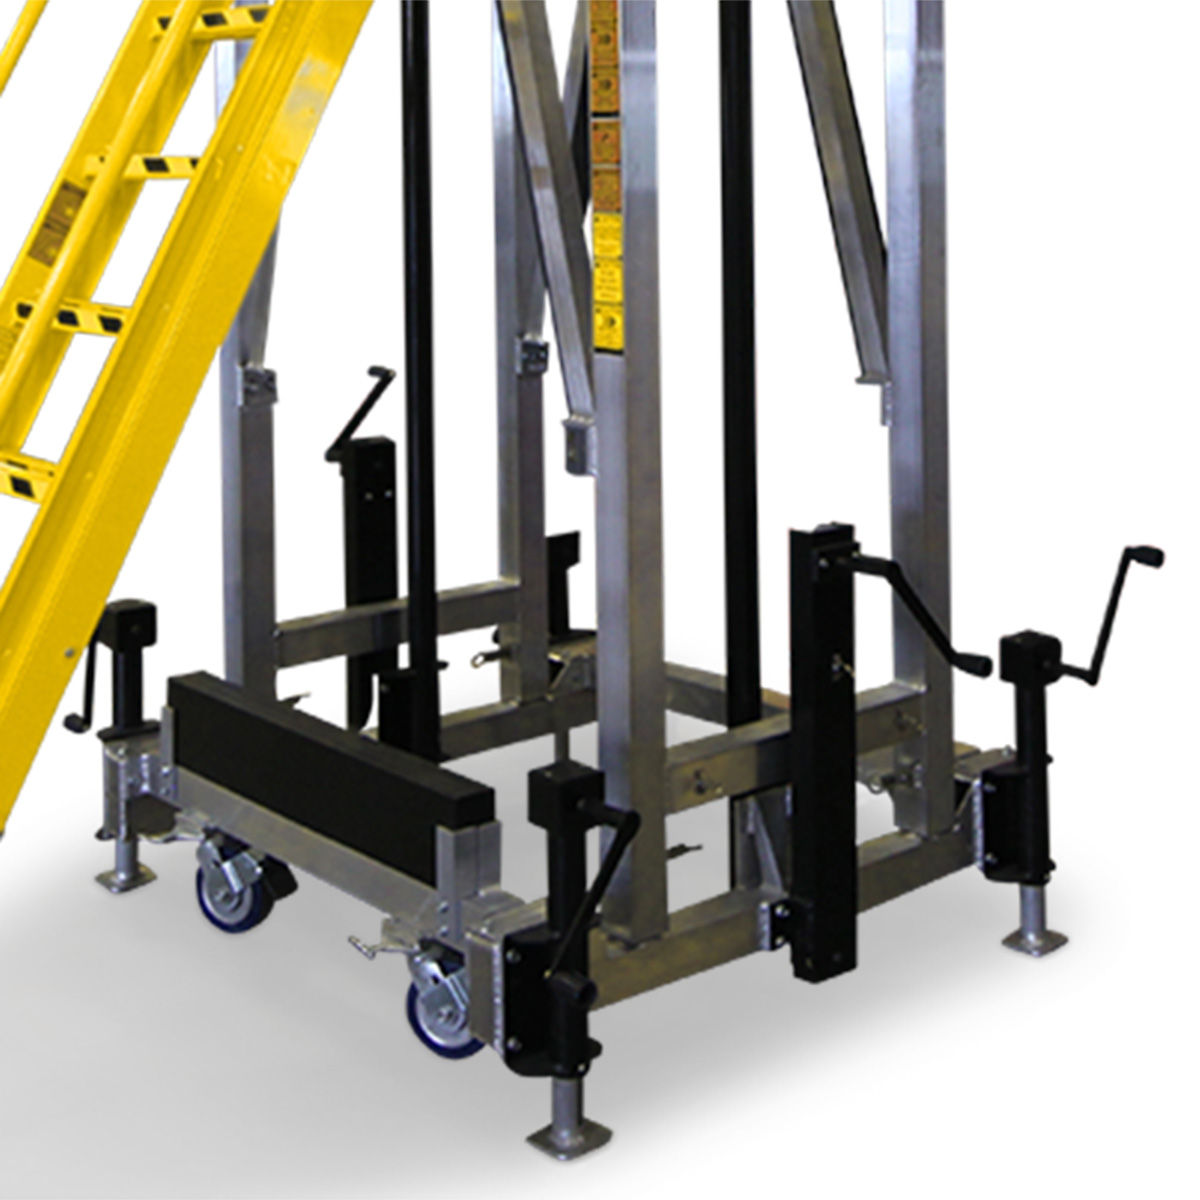 EC725 | H225M Helicopter – Daily Maintenance Stands Floor leveling jacks, floor locks and electric lifting columns for OSHA compliant, mobile, height-adjustable work stands.